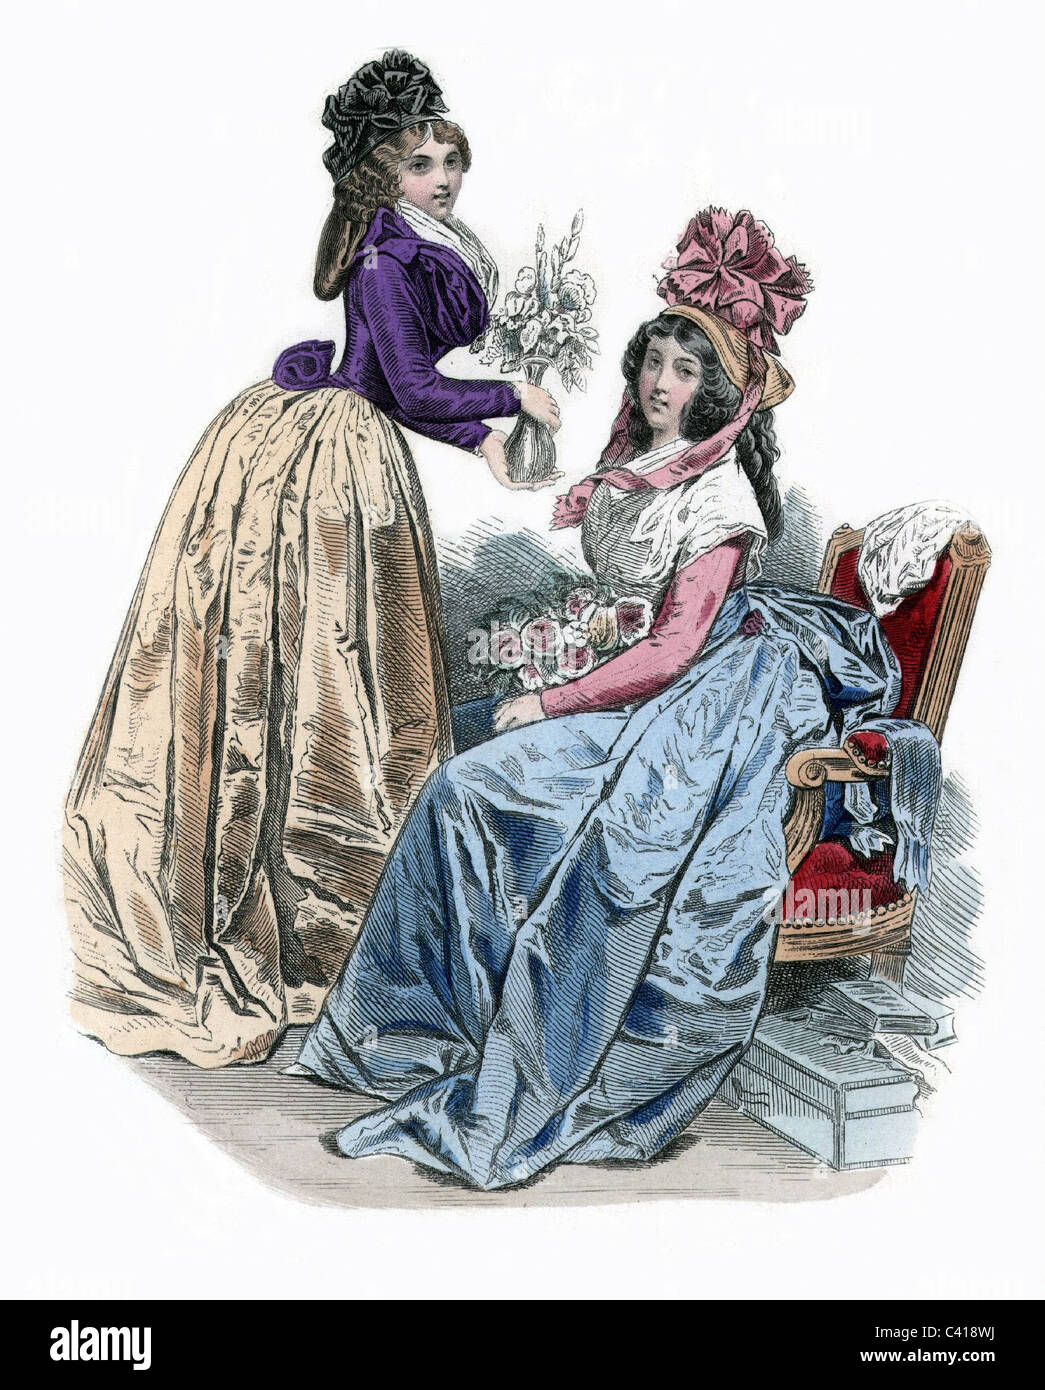 fashion ladie s fashion th century paris  fashion ladie s fashion 18th century paris 1790 coloured engraving 19th century historic historical women woma